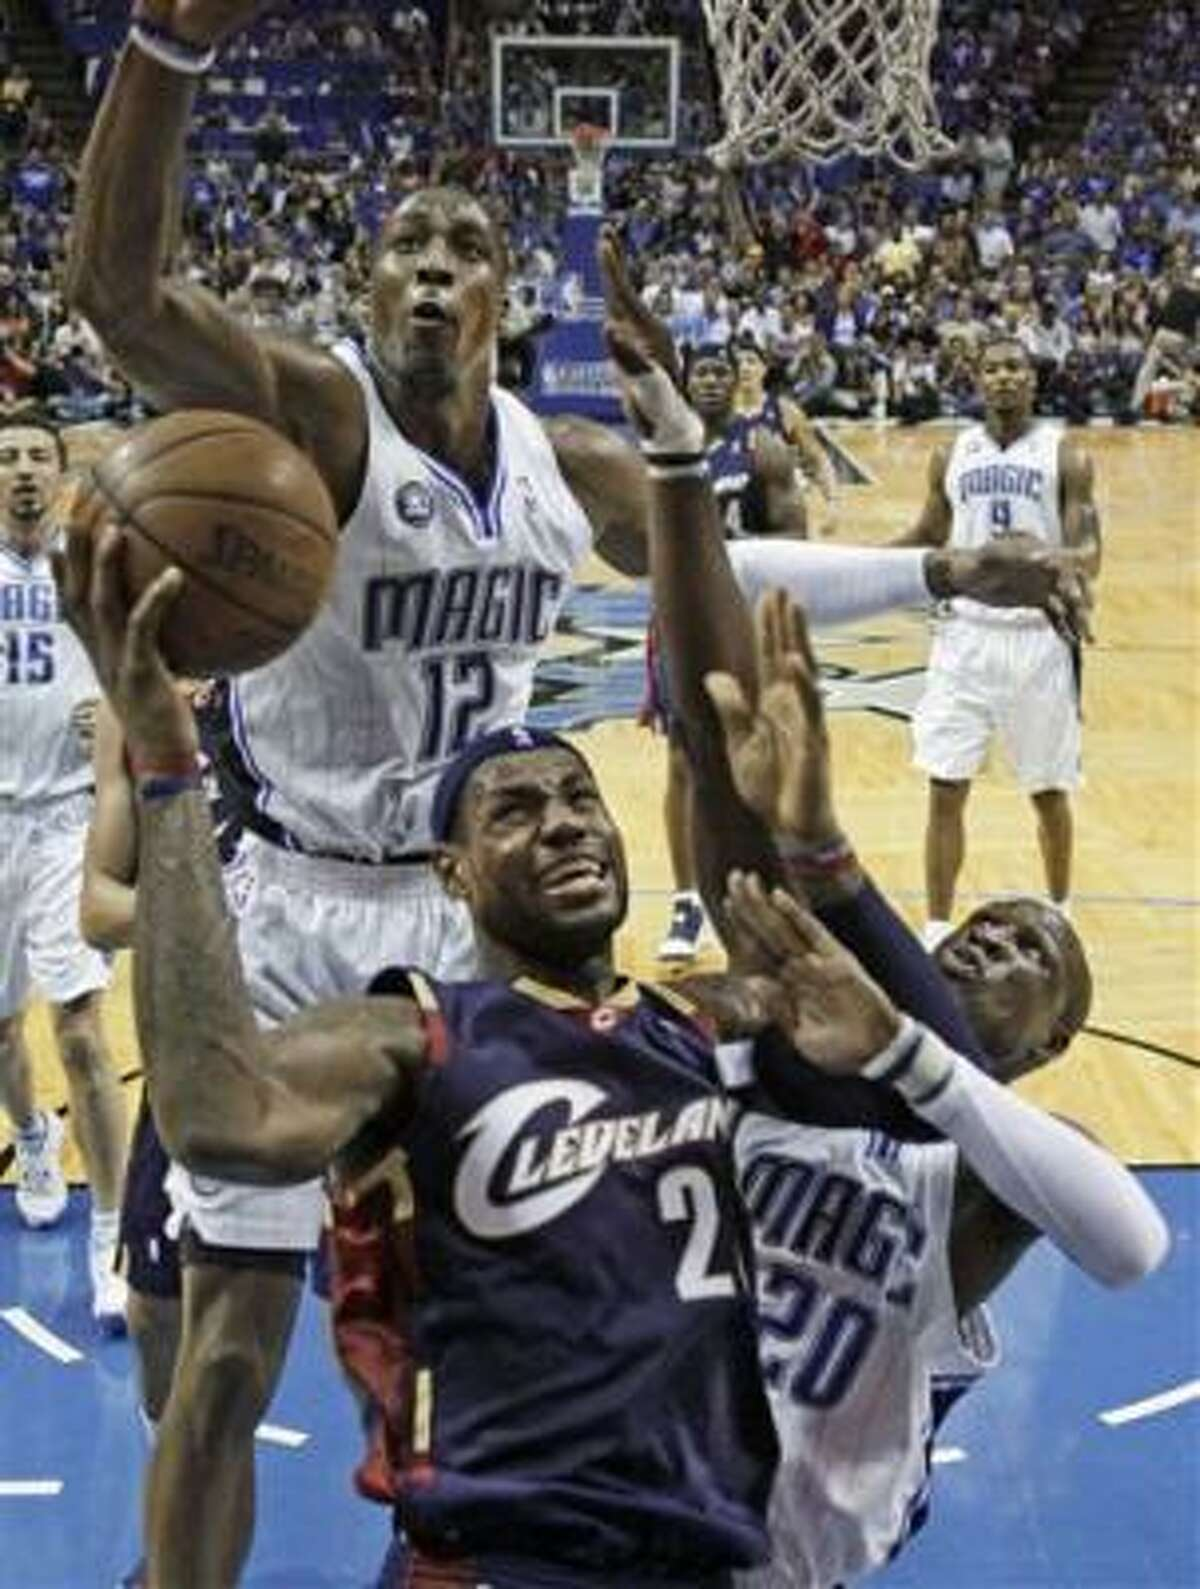 Game 6: Magic 103, Cavaliers 90 Cleveland Cavaliers' LeBron James (23) shoots between Orlando Magic's Hedo Turkoglu, from Turkey,left, and Rashard Lewis (9) in the first quarter.